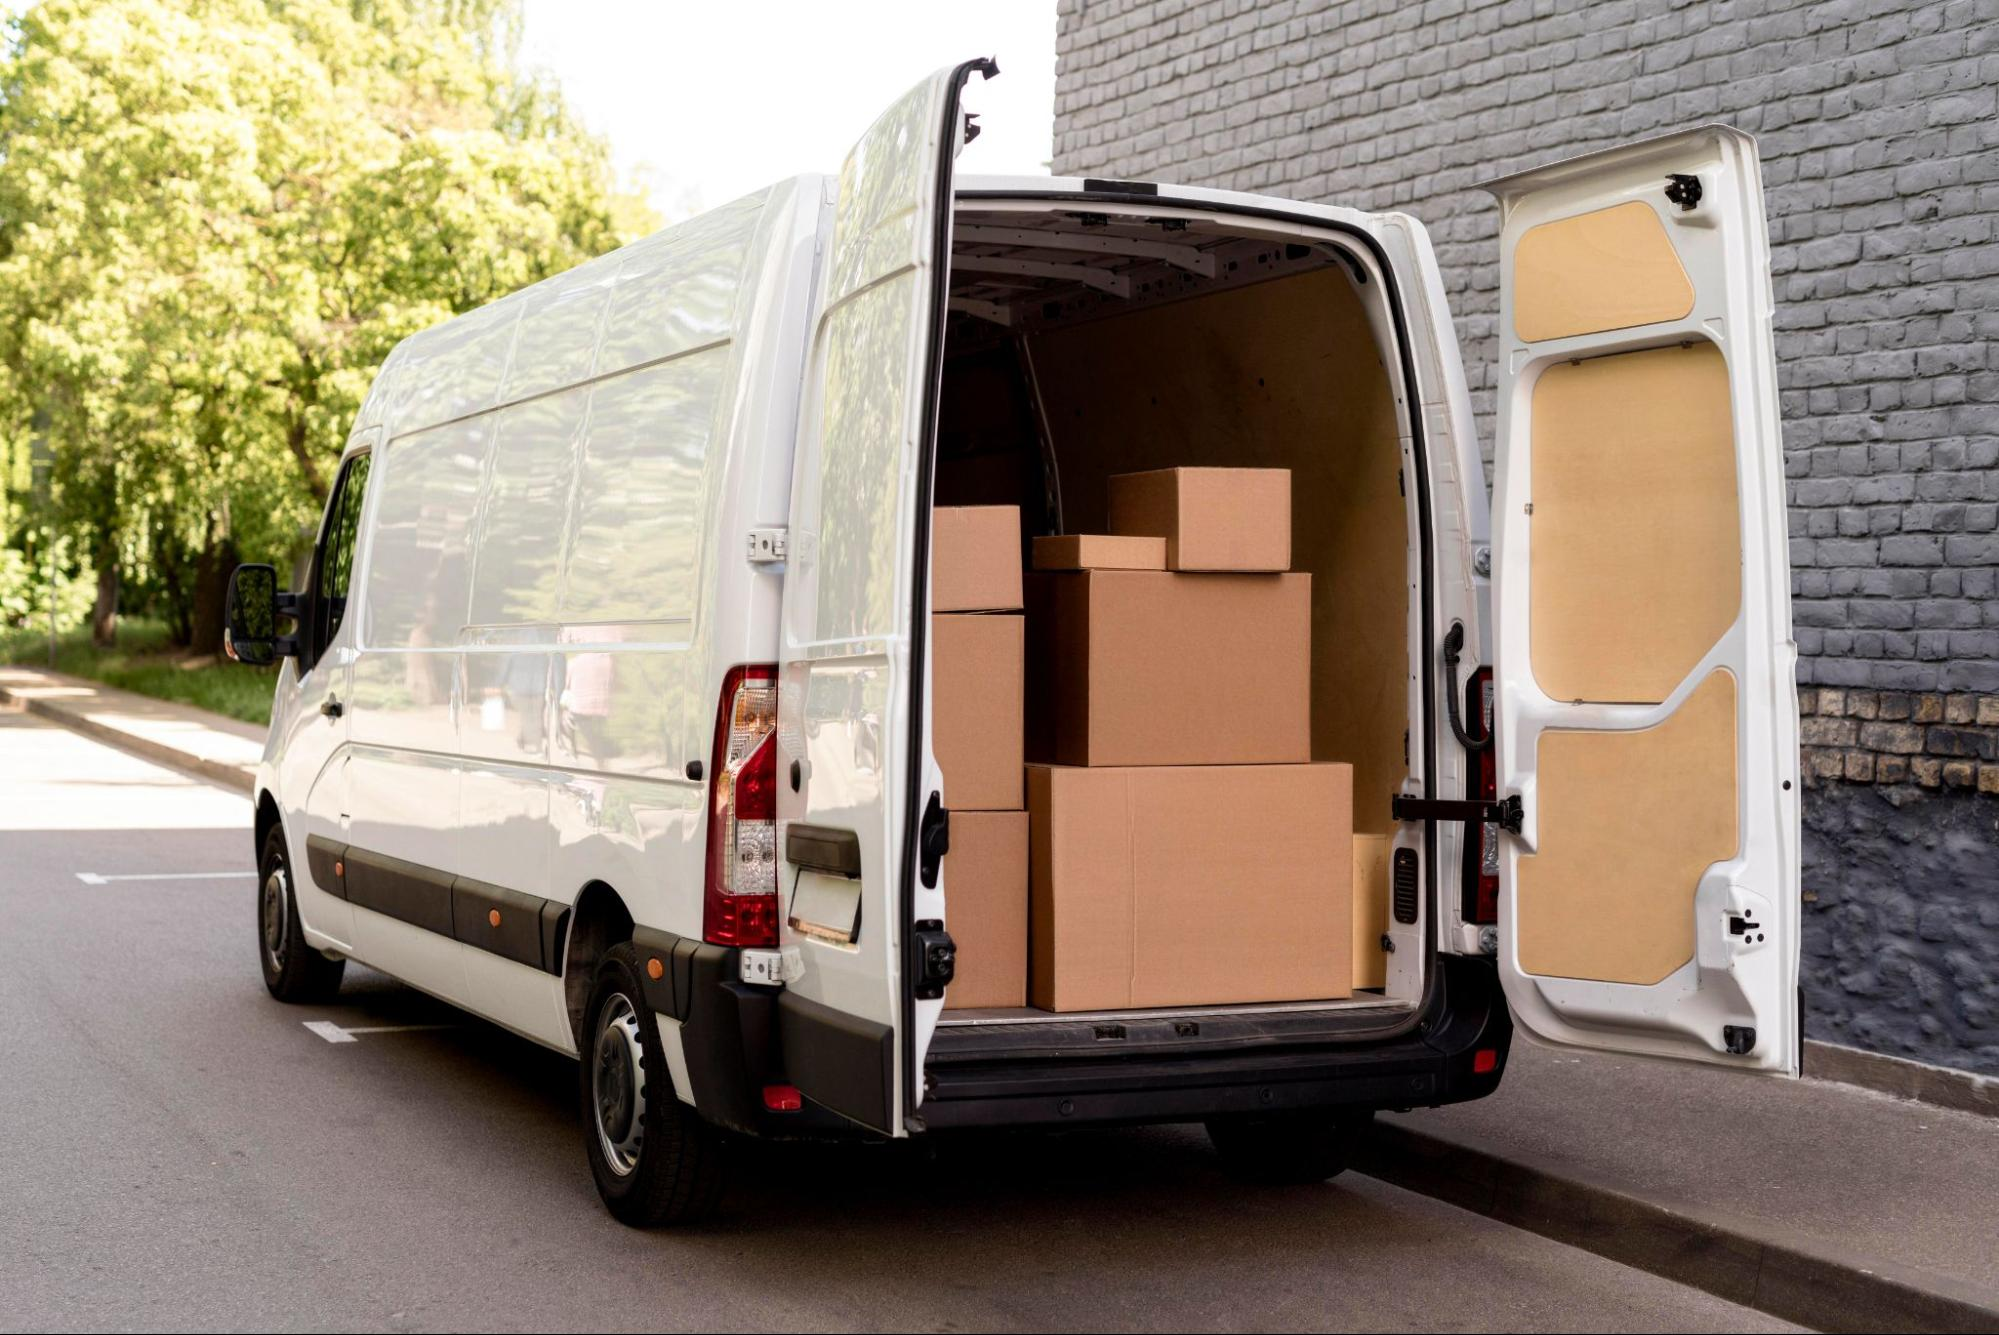 A delivery van with the backdoor open to show boxes inside